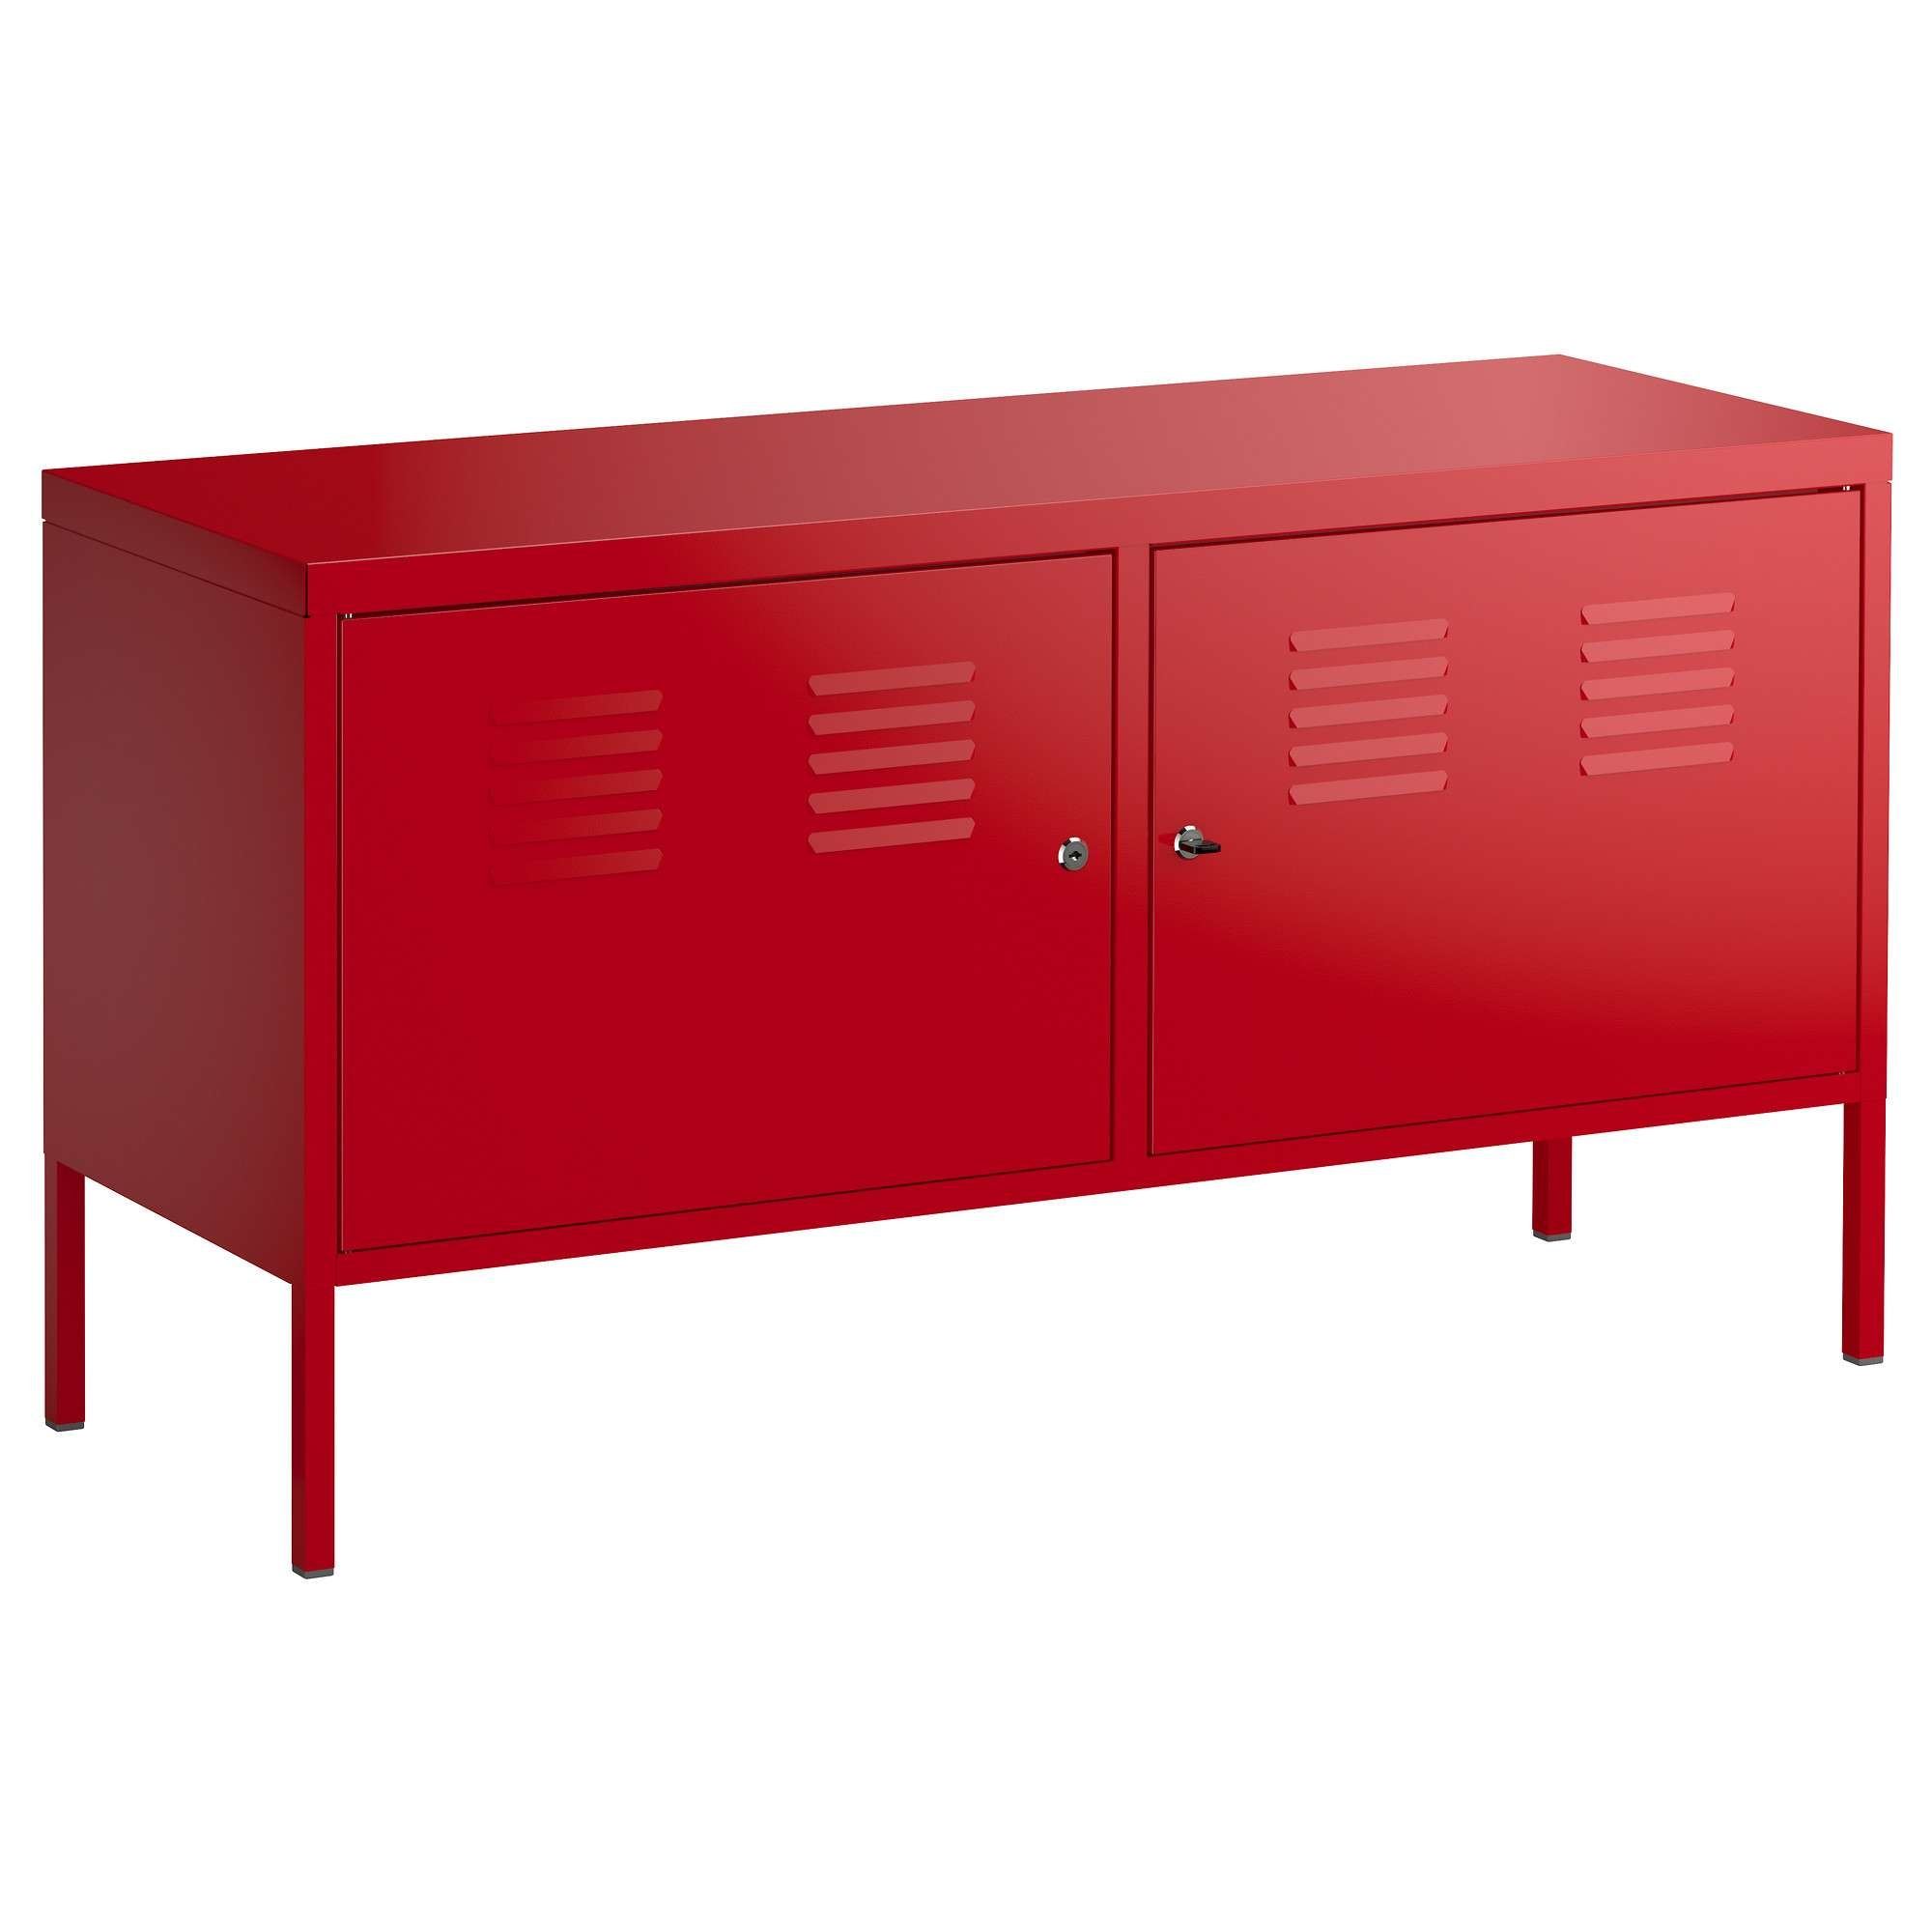 Ikea Ps Cabinet Red 119X63 Cm – Ikea Regarding Red Sideboards (View 2 of 20)